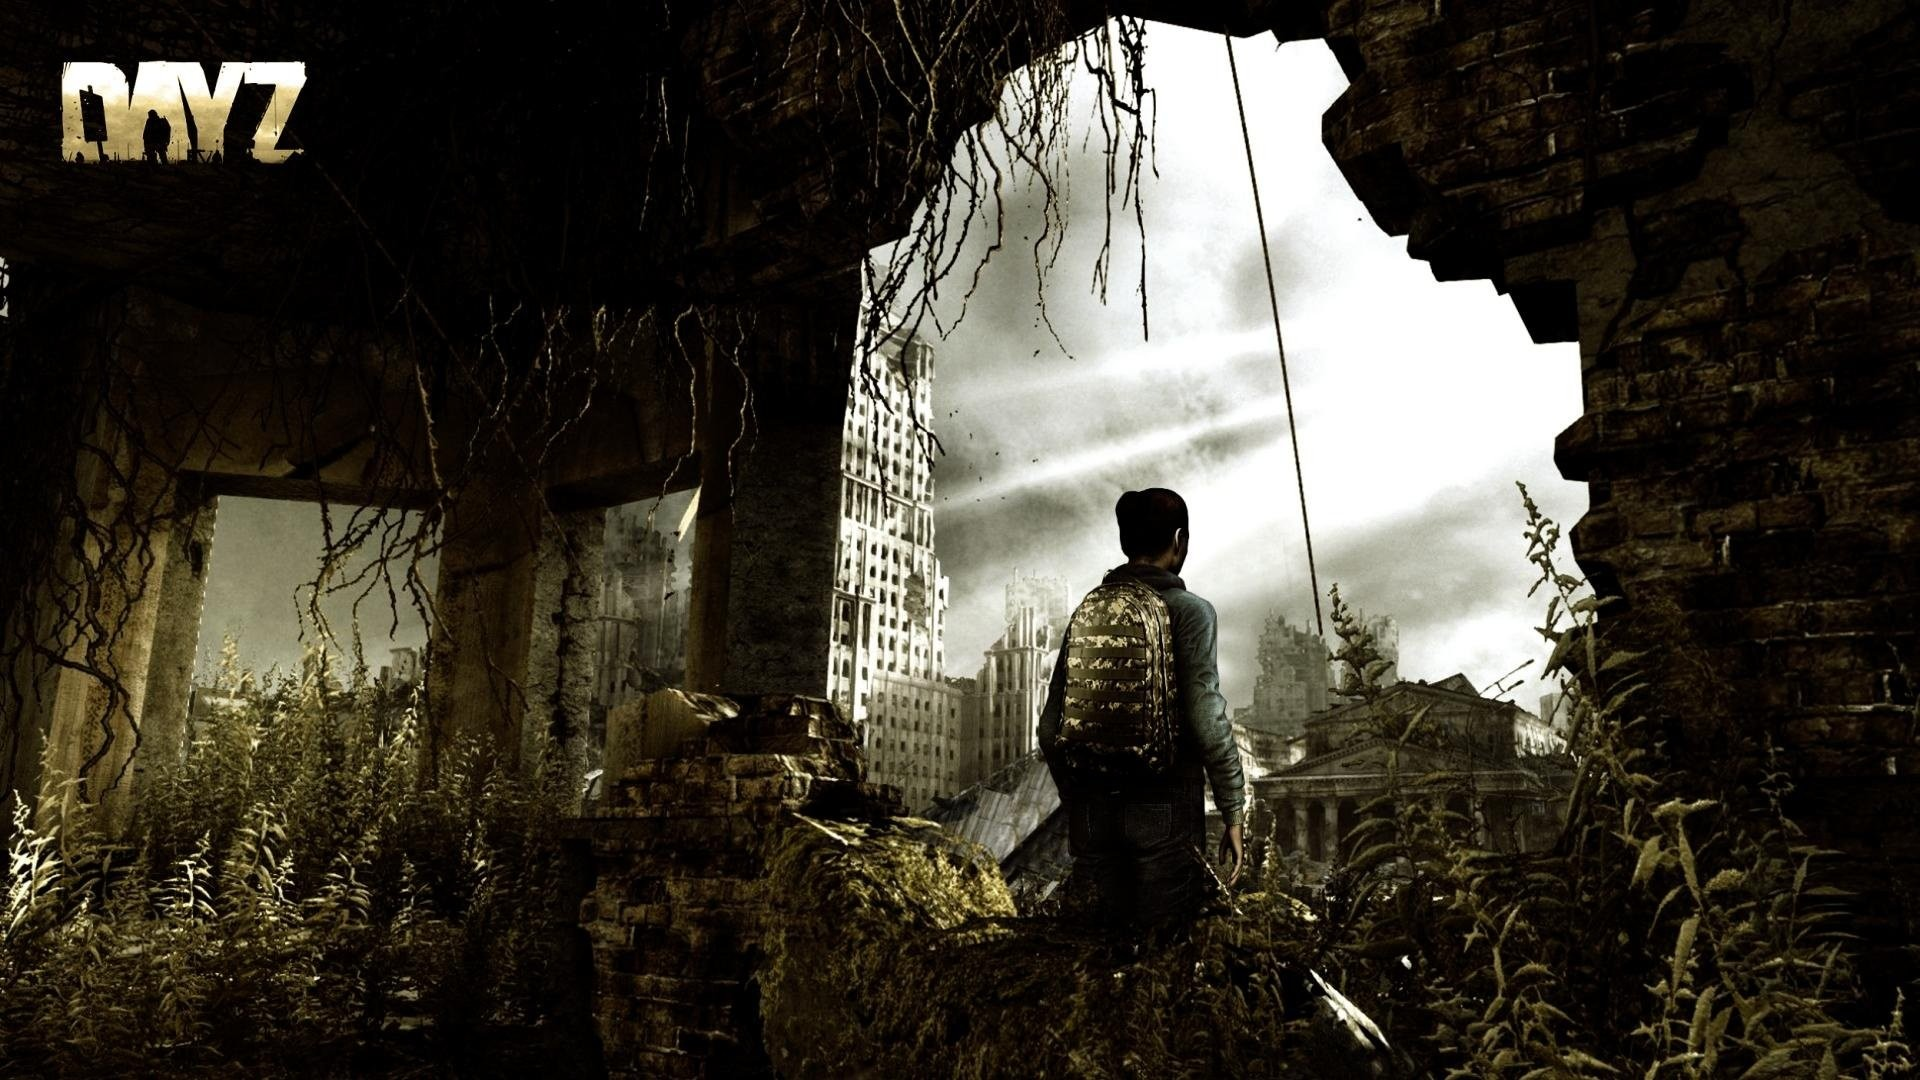 Zombies Wallpaper 1920x1080 Zombie Apocalypse Wall...